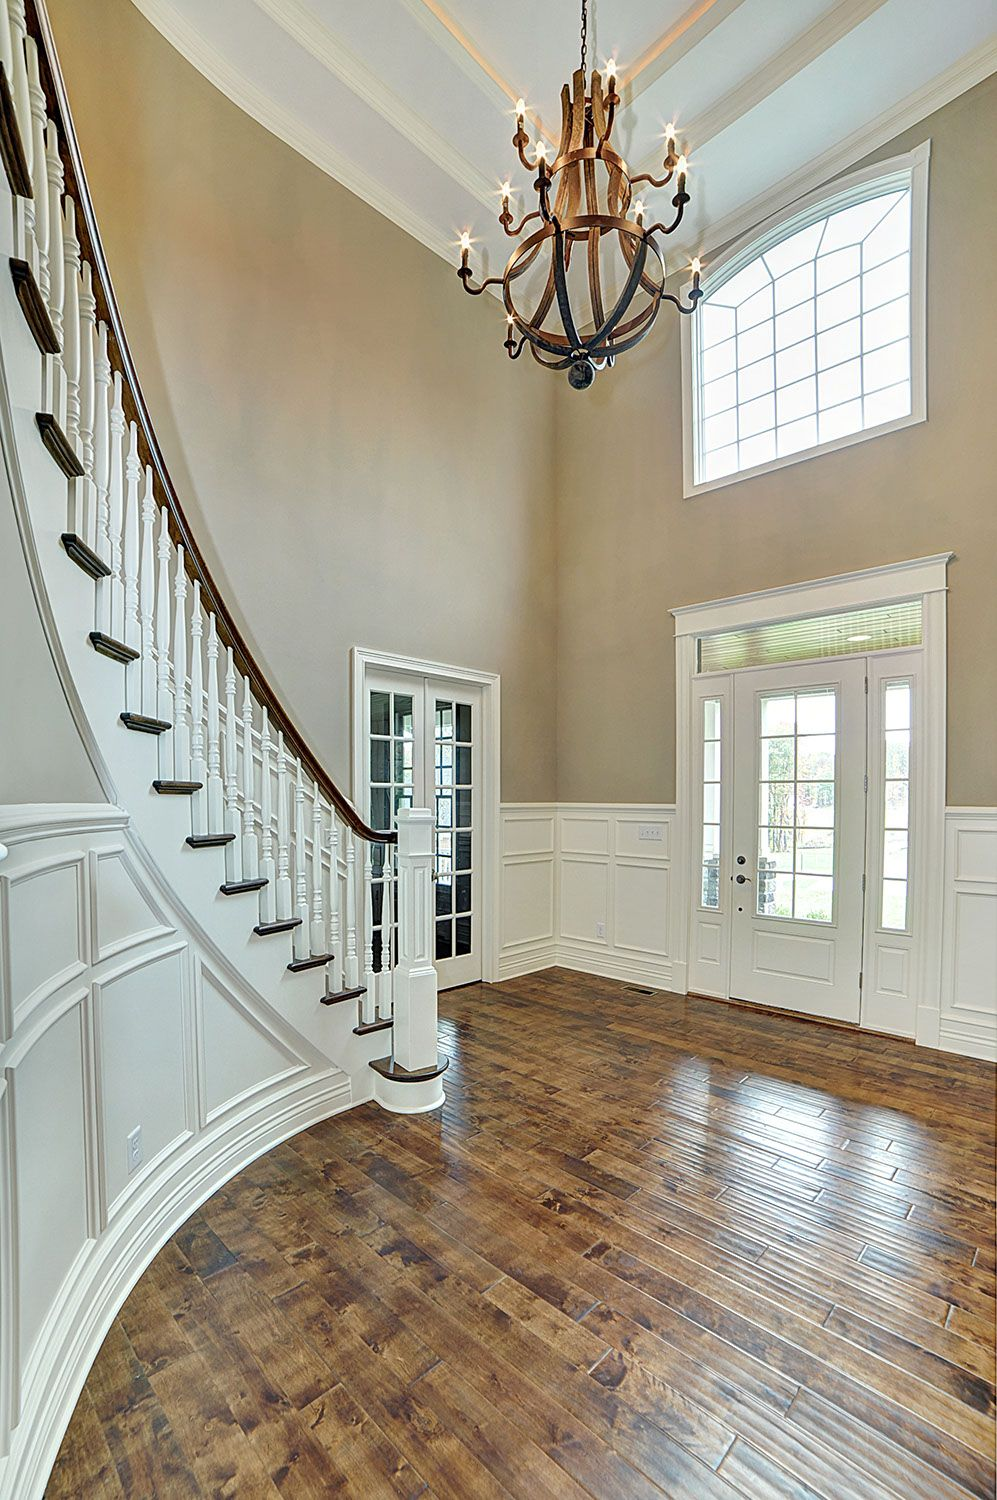 House Foyer Staircase : Curved staircase in two story foyer with white wainscoting